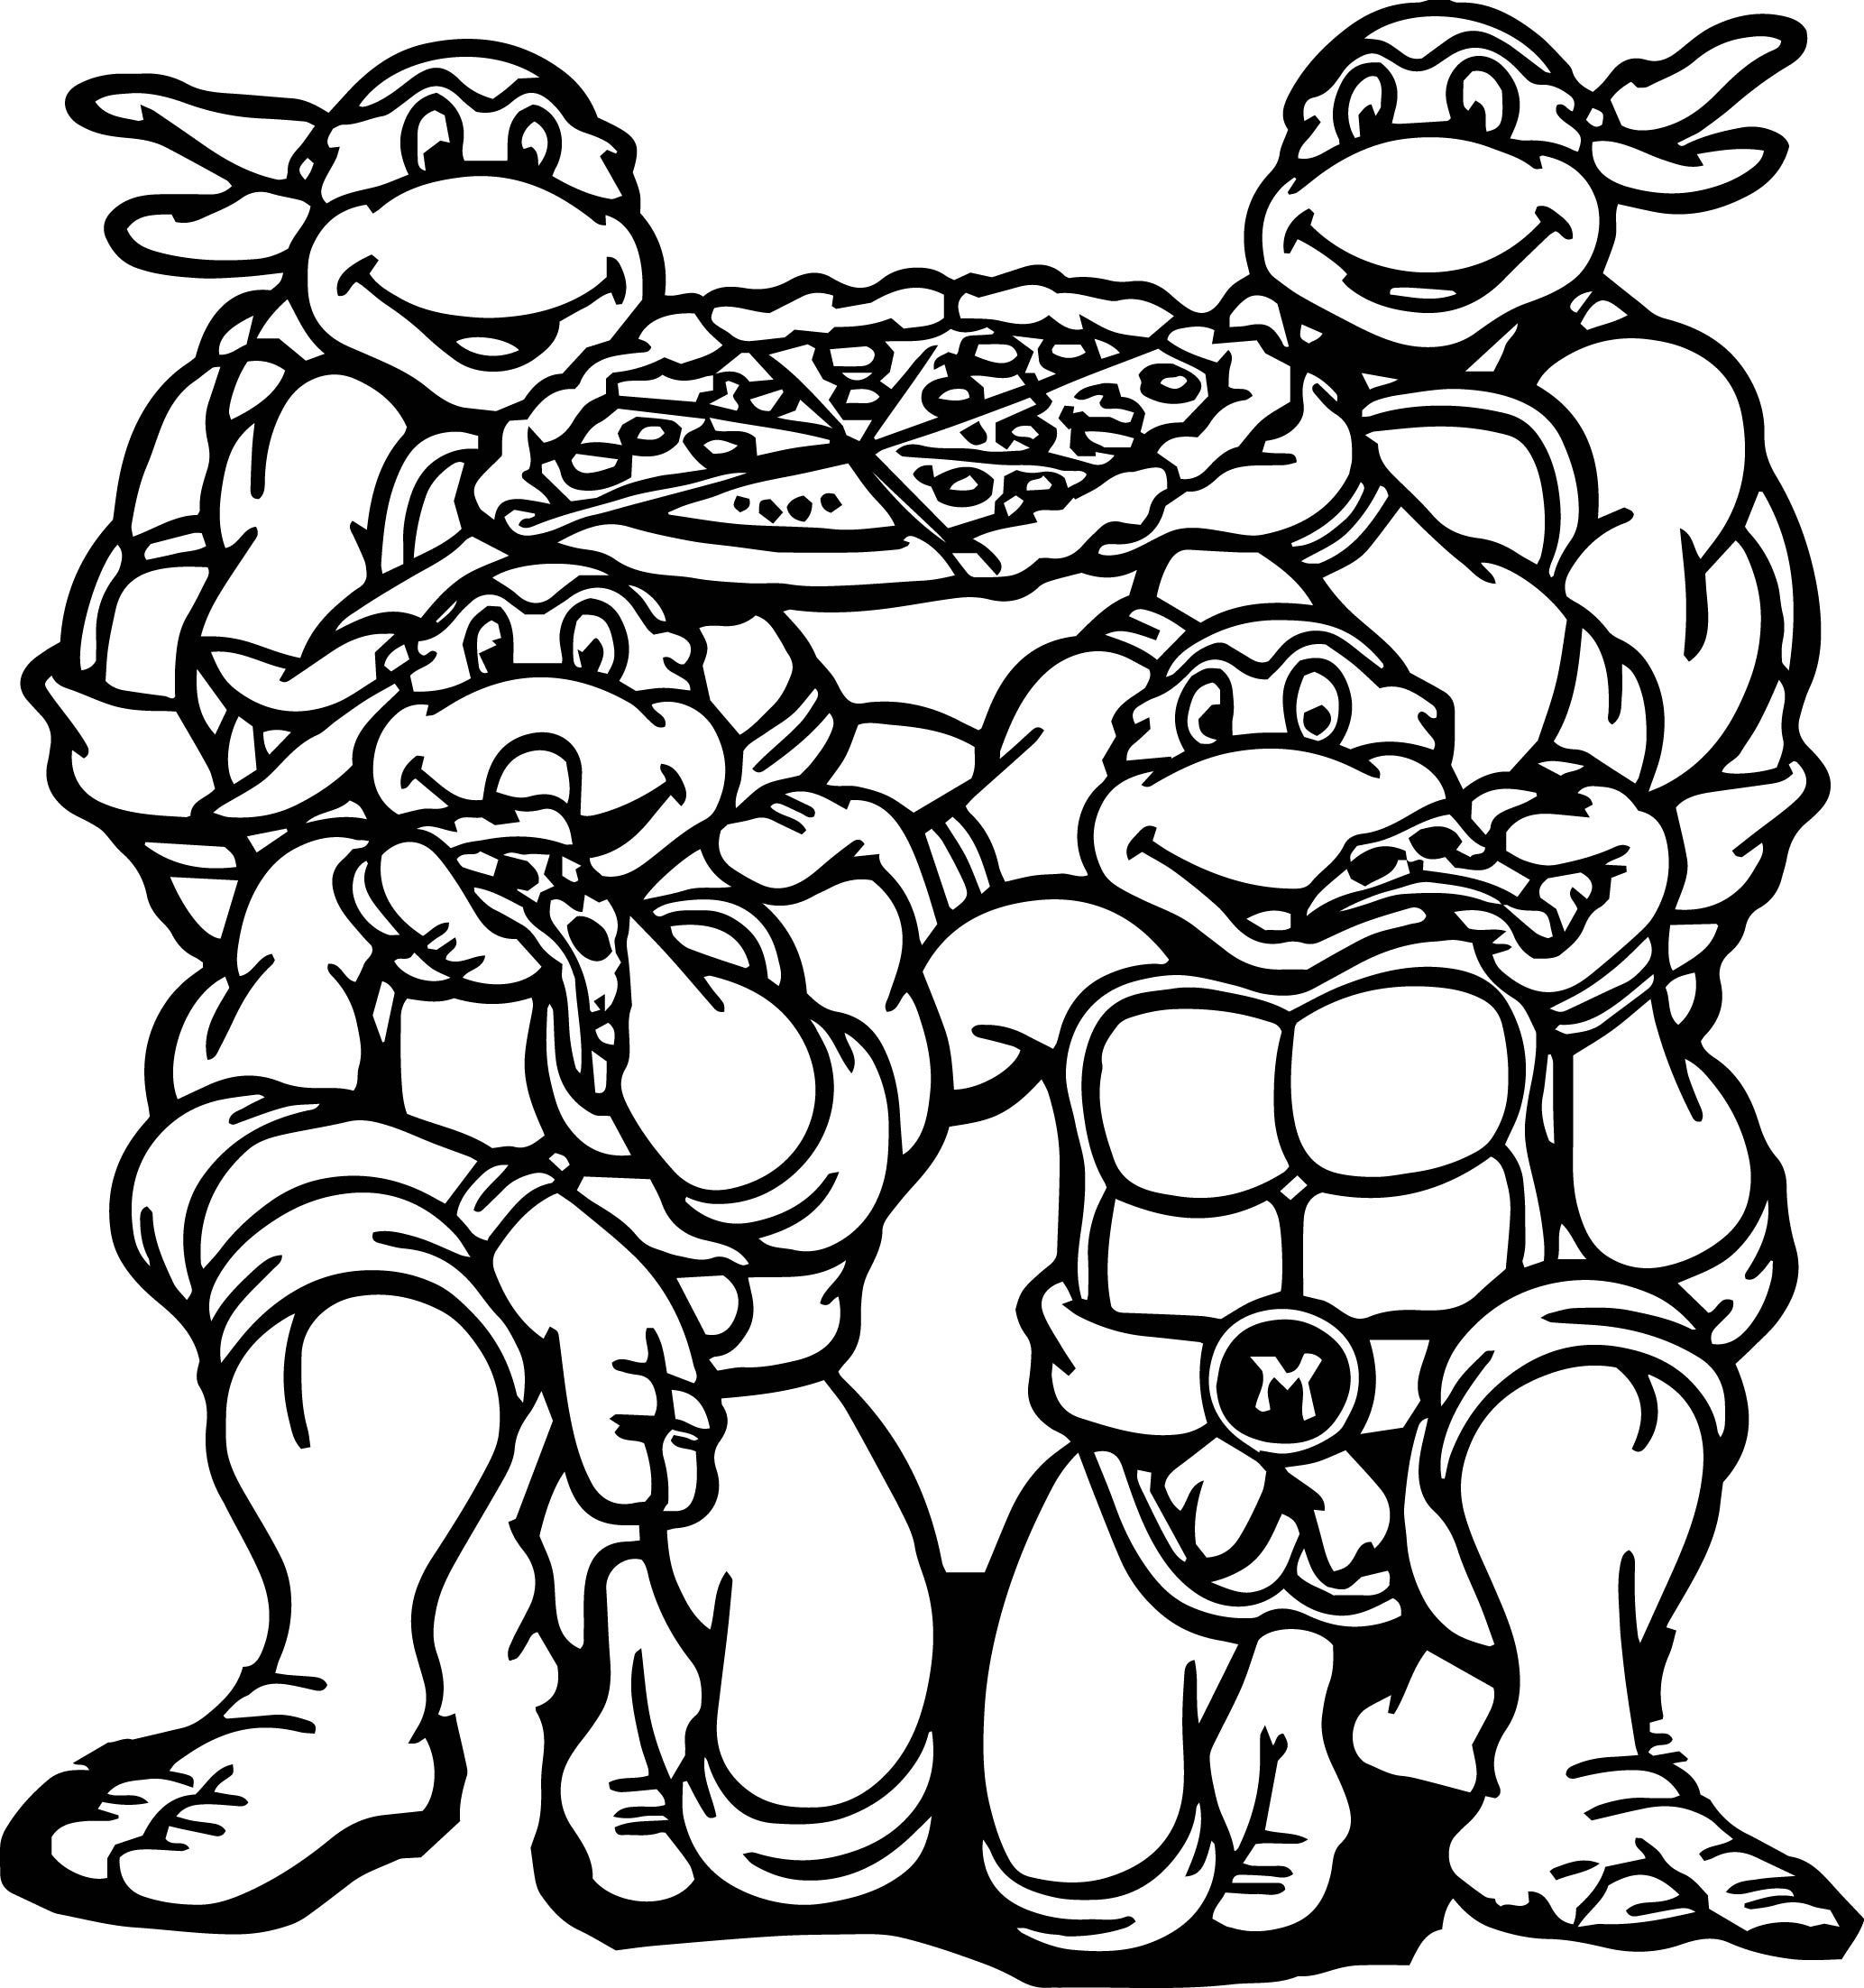 2067x2204 Inspiration Ninja Turtle Coloring Pages Michelangelo